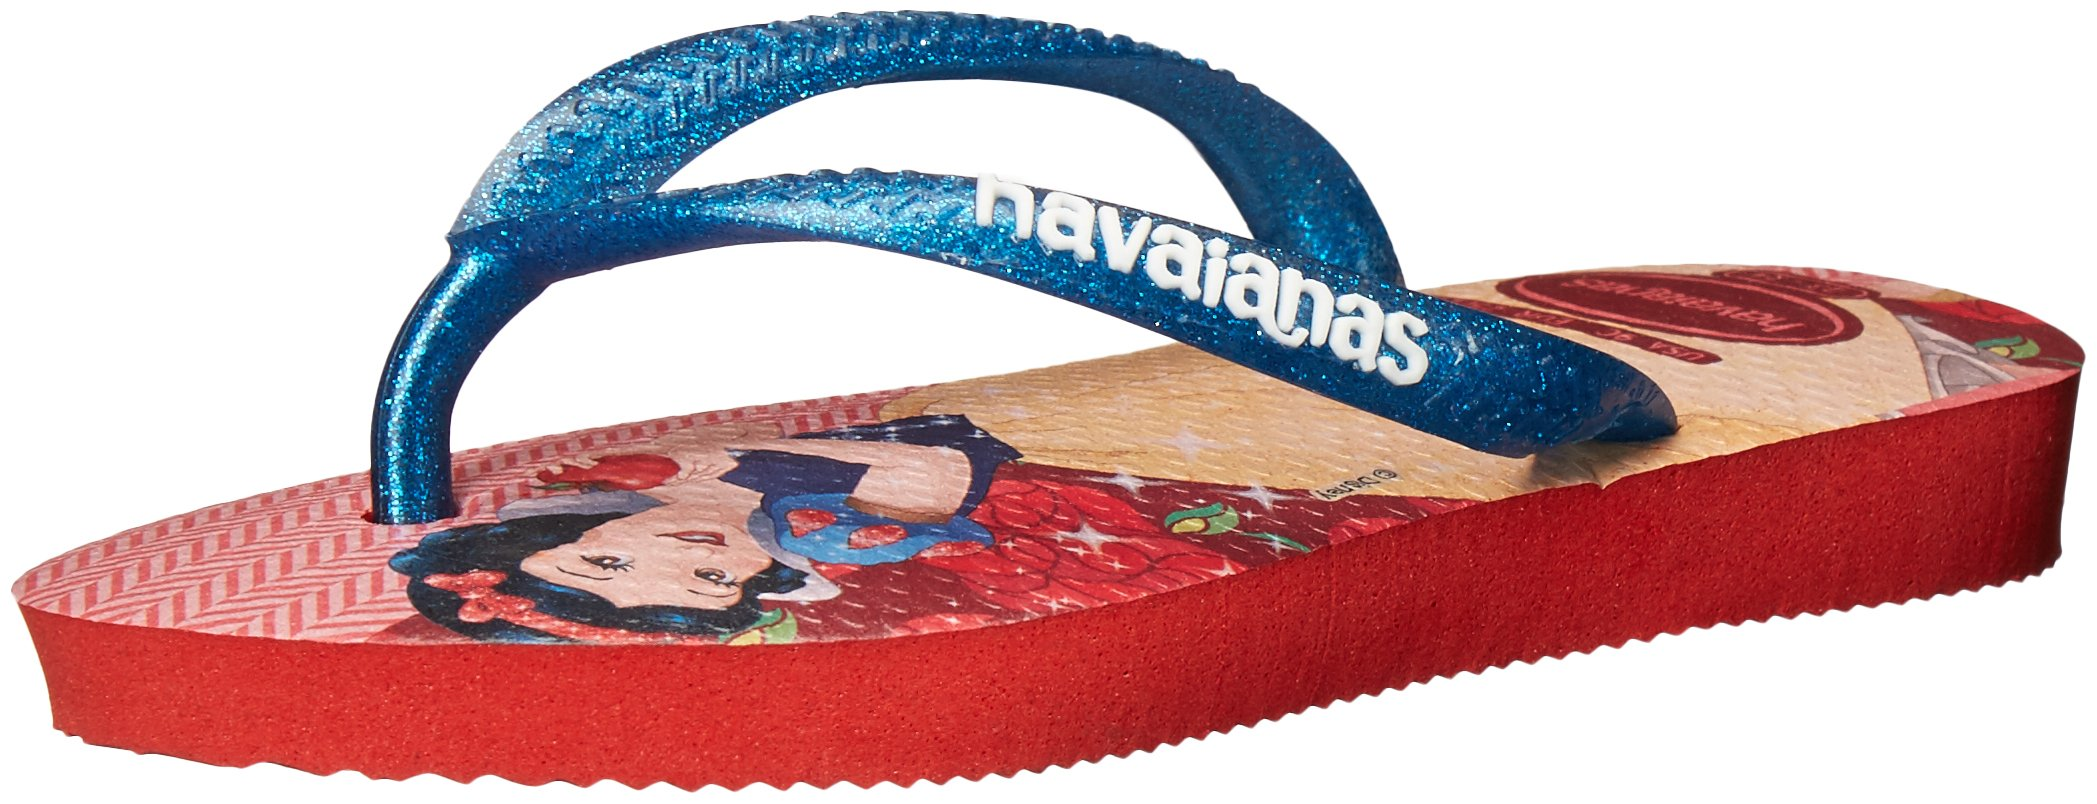 Havaianas Slim Flip Flop Sandals, Toddler/Child, Princess,Red,33/34 BR (3-4 M US Little Kid) by Havaianas (Image #1)